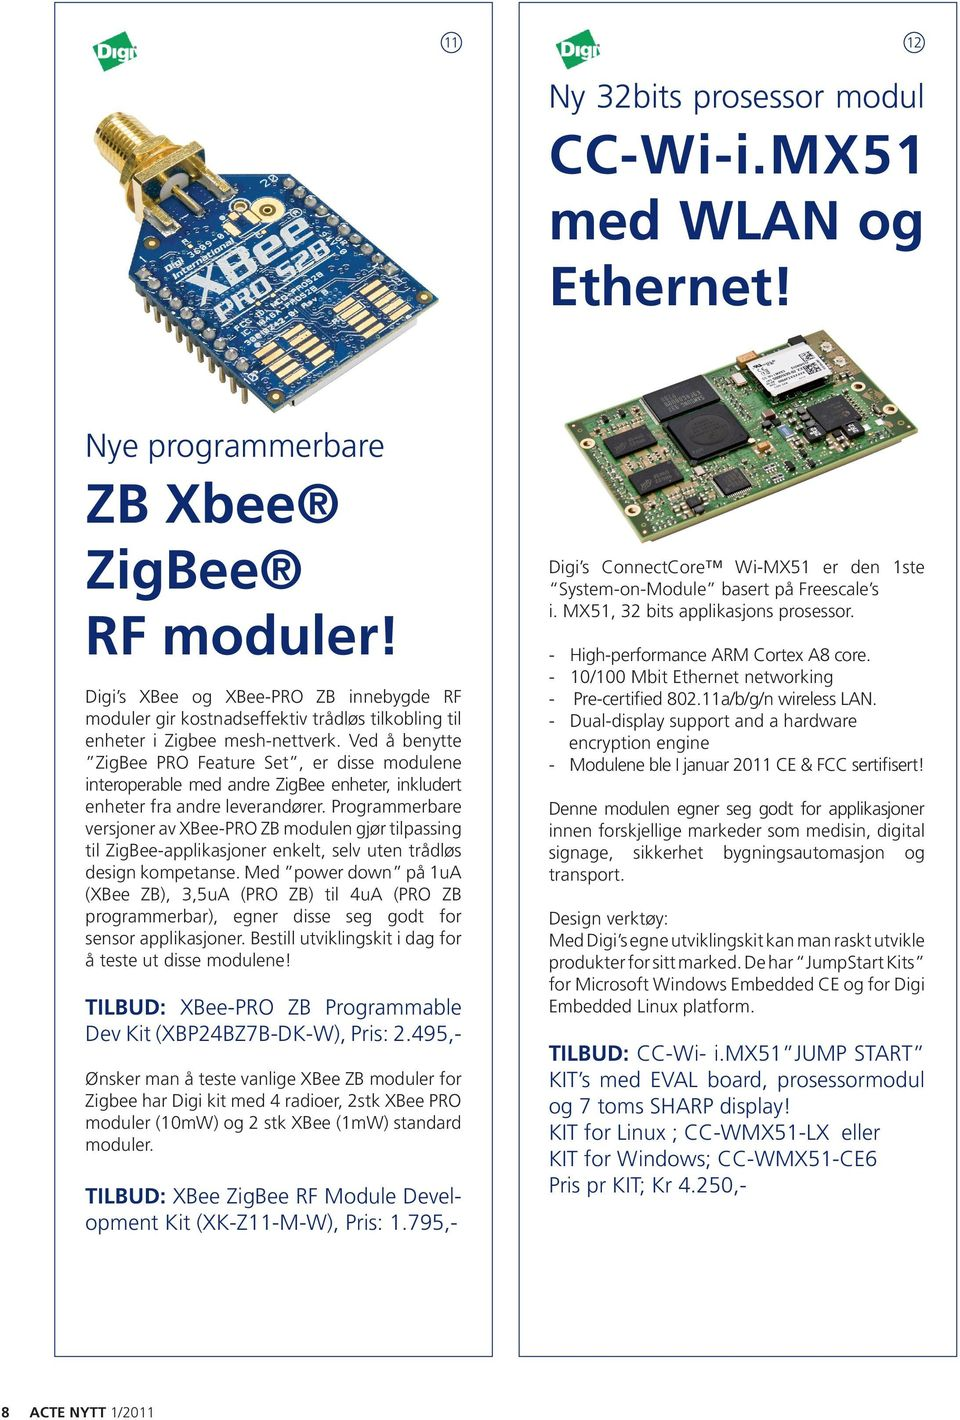 Ved å benytte ZigBee PRO Feature Set, er disse modulene interoperable med andre ZigBee enheter, inkludert enheter fra andre leverandører.